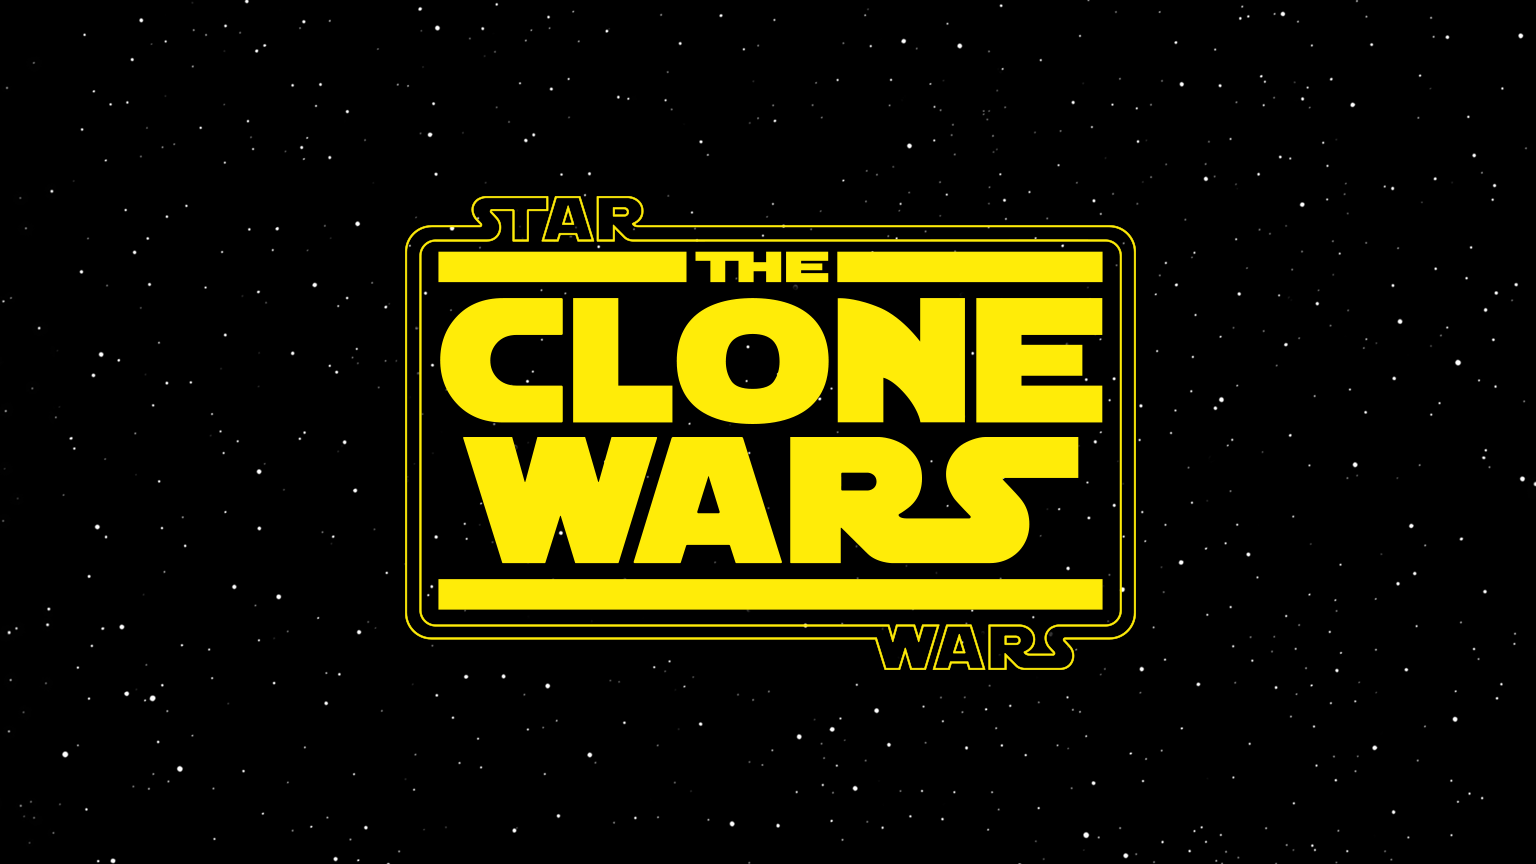 the clone wars cinematown.it